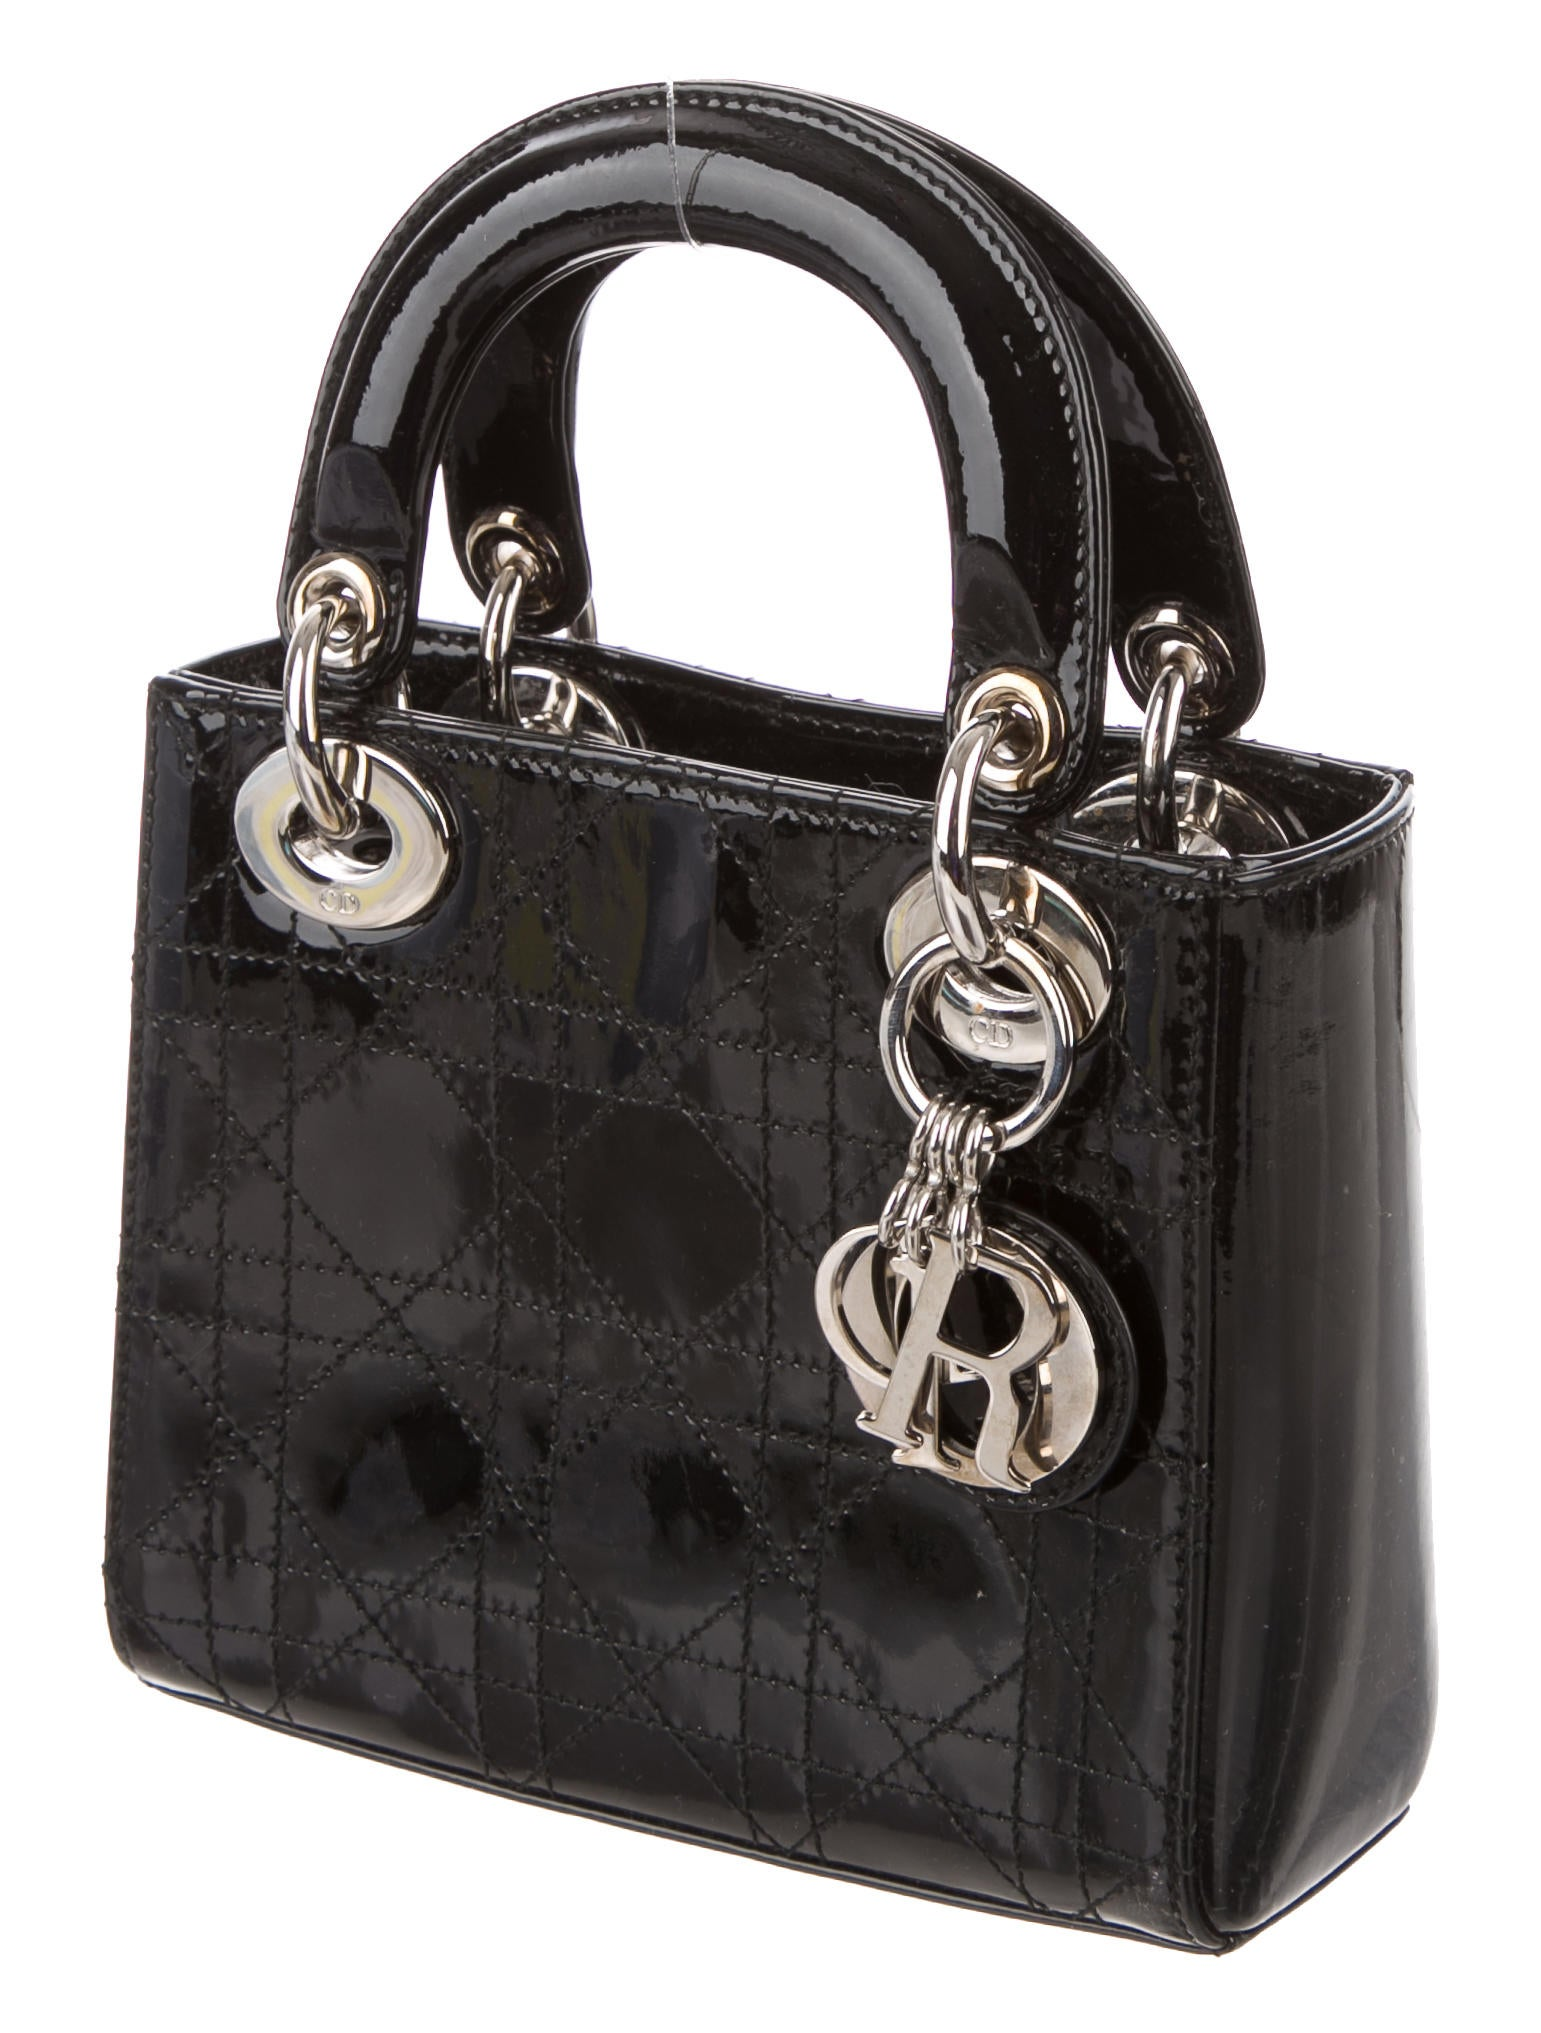 The bag lady purses - Compare Prices & Store Ratings at warmongeri.gae Selection · Big Deals · Comparison Shopping · Top Brands.